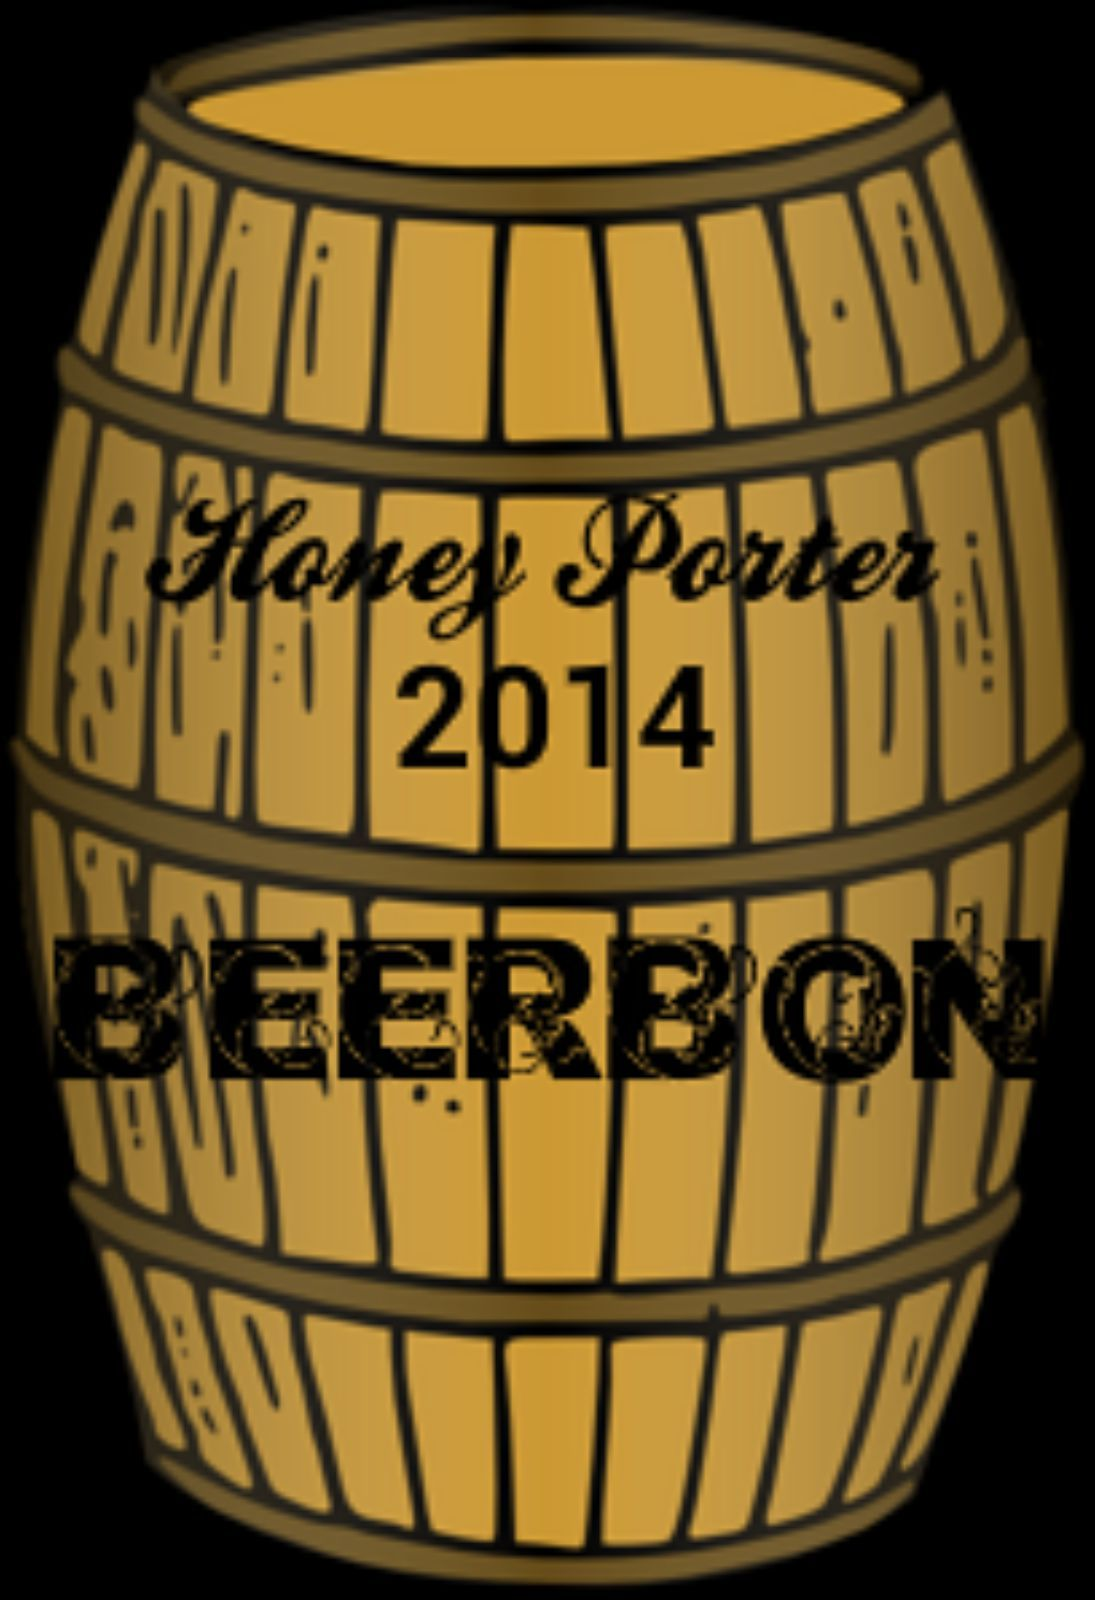 My Beerbon 2014 Porter Beer base with a shot of honey